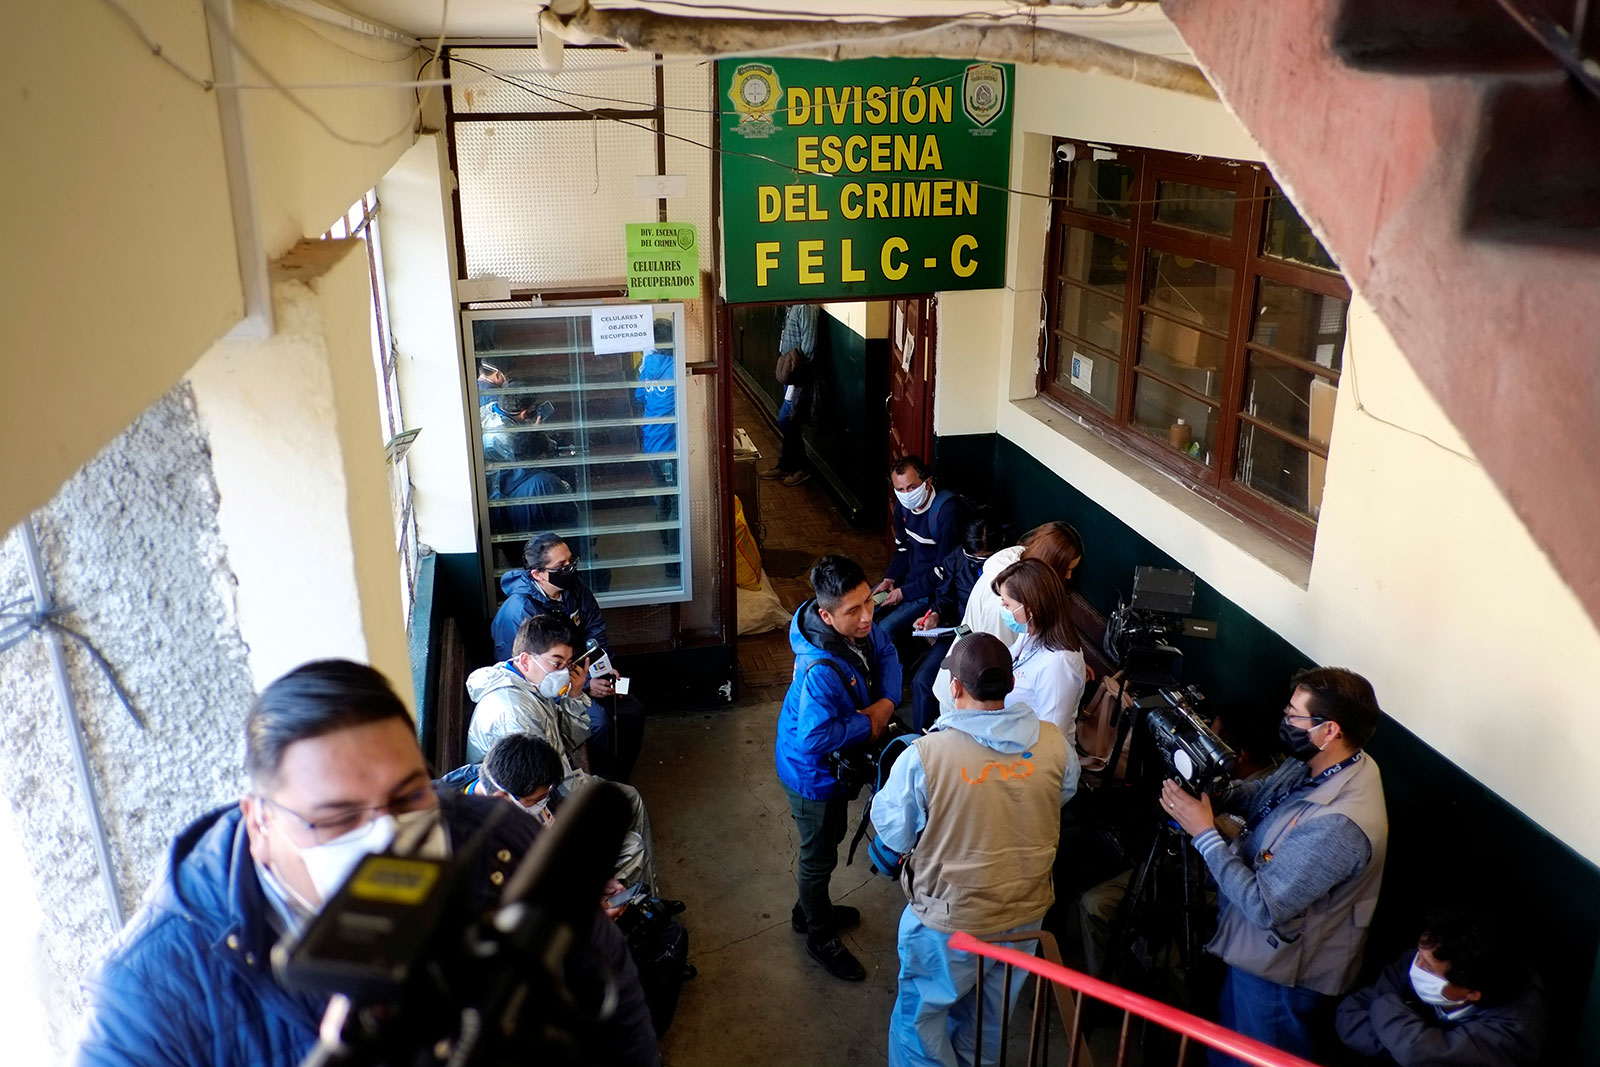 Journalists wait at a police station as Bolivian prosecutors launched a probe into potential corruption regarding overpriced purchases of ventilators, in La Paz, Bolivia on Wednesday.